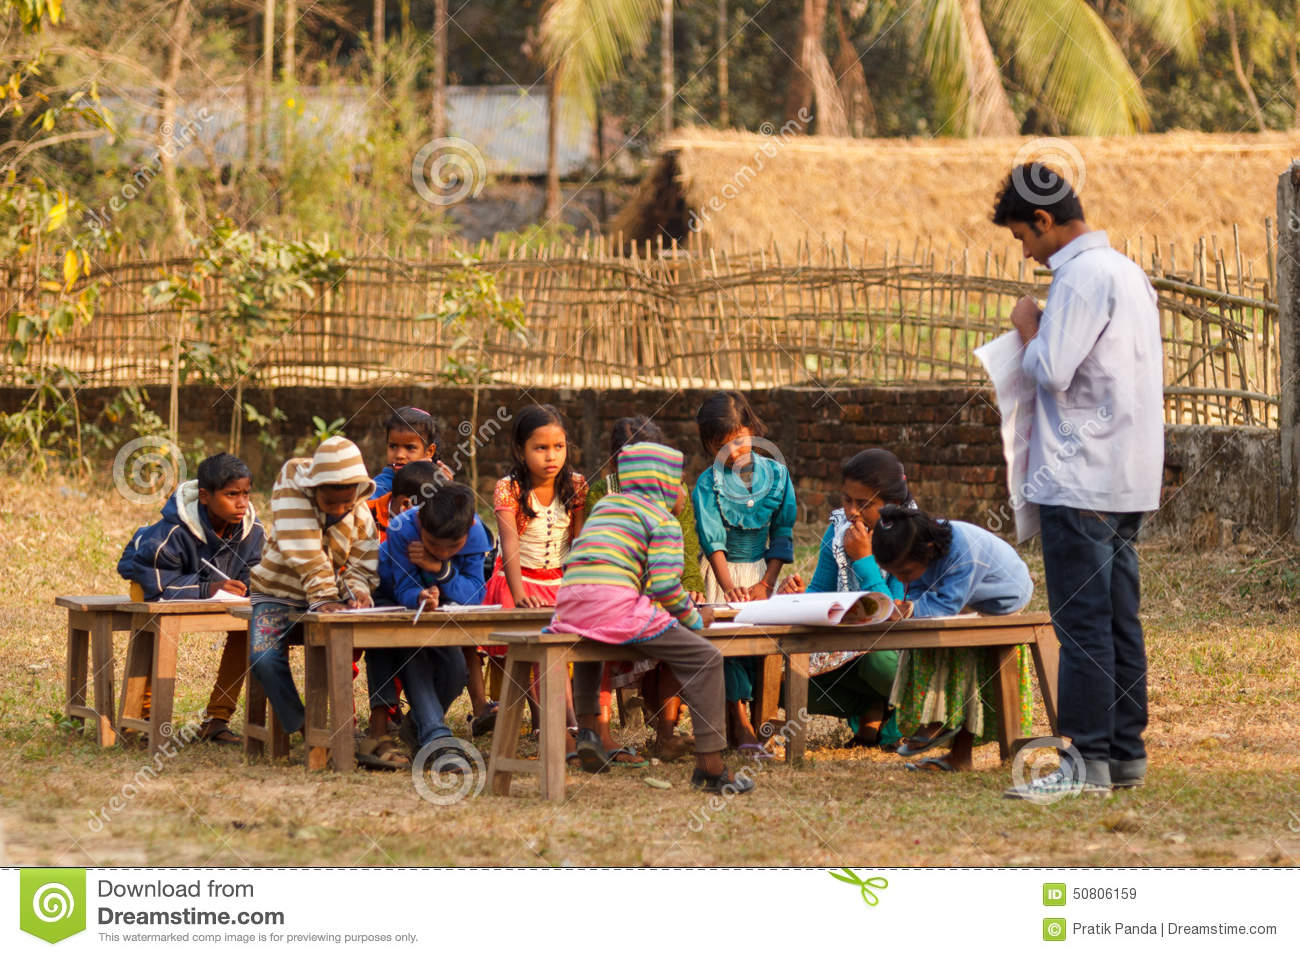 education and rural areas Preface 4 abbreviations andacronyms 5 introduction 7 what do urbanand rural mean 8 what is the relationship between schools and their communities in rural areas 10.